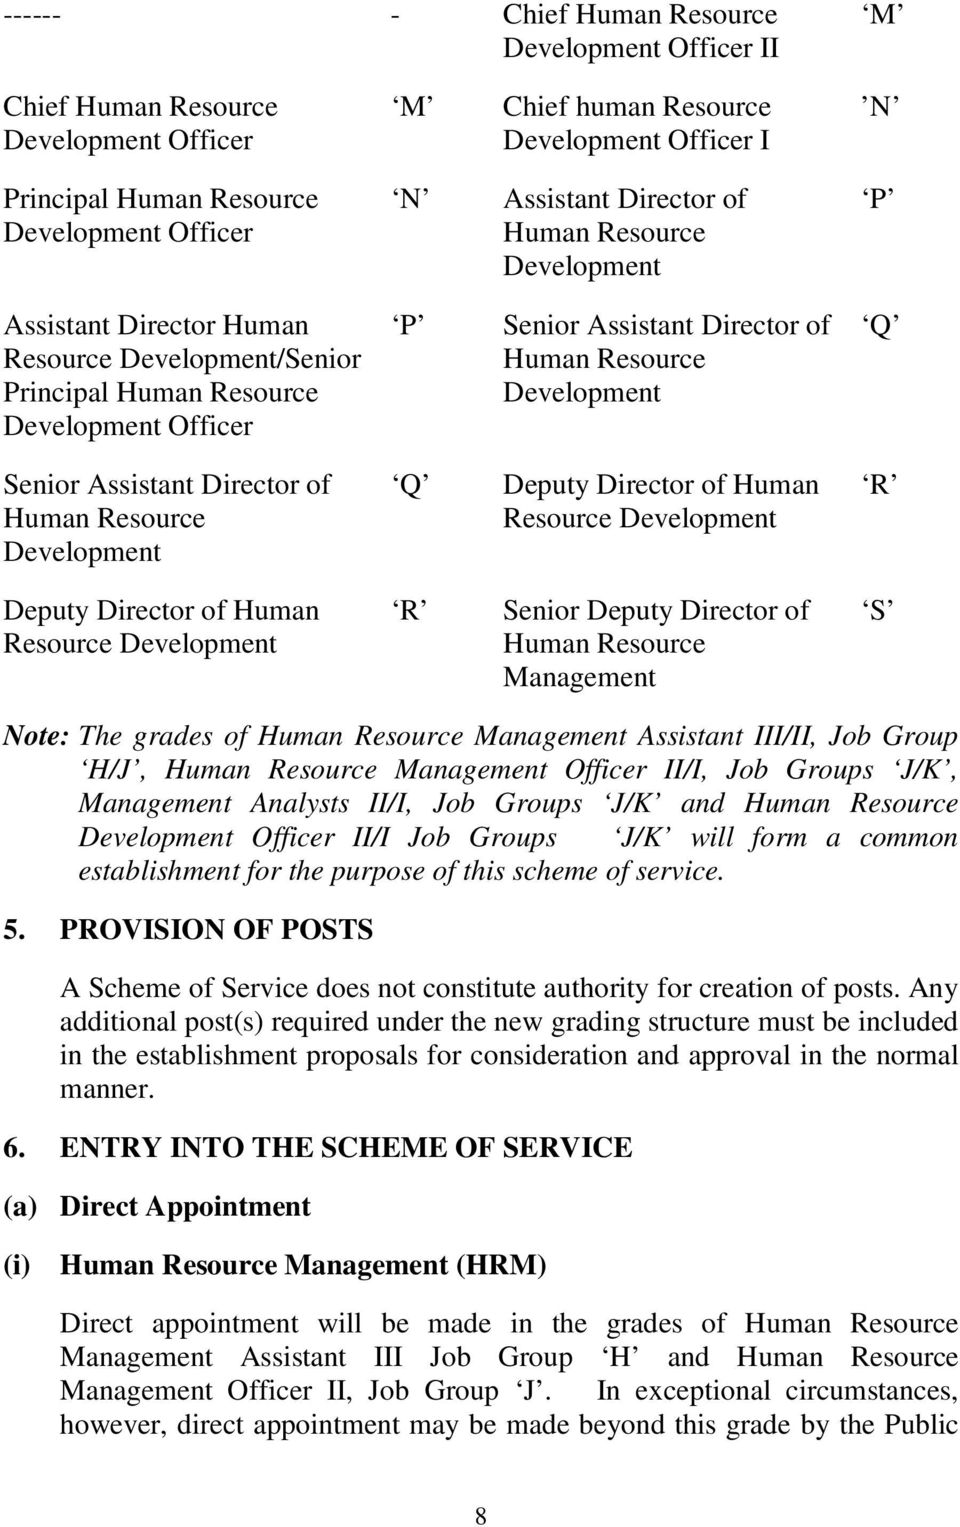 Senior Assistant Director of Human Resource Development Q Deputy Director of Human Resource Development R Deputy Director of Human Resource Development R Senior Deputy Director of Human Resource